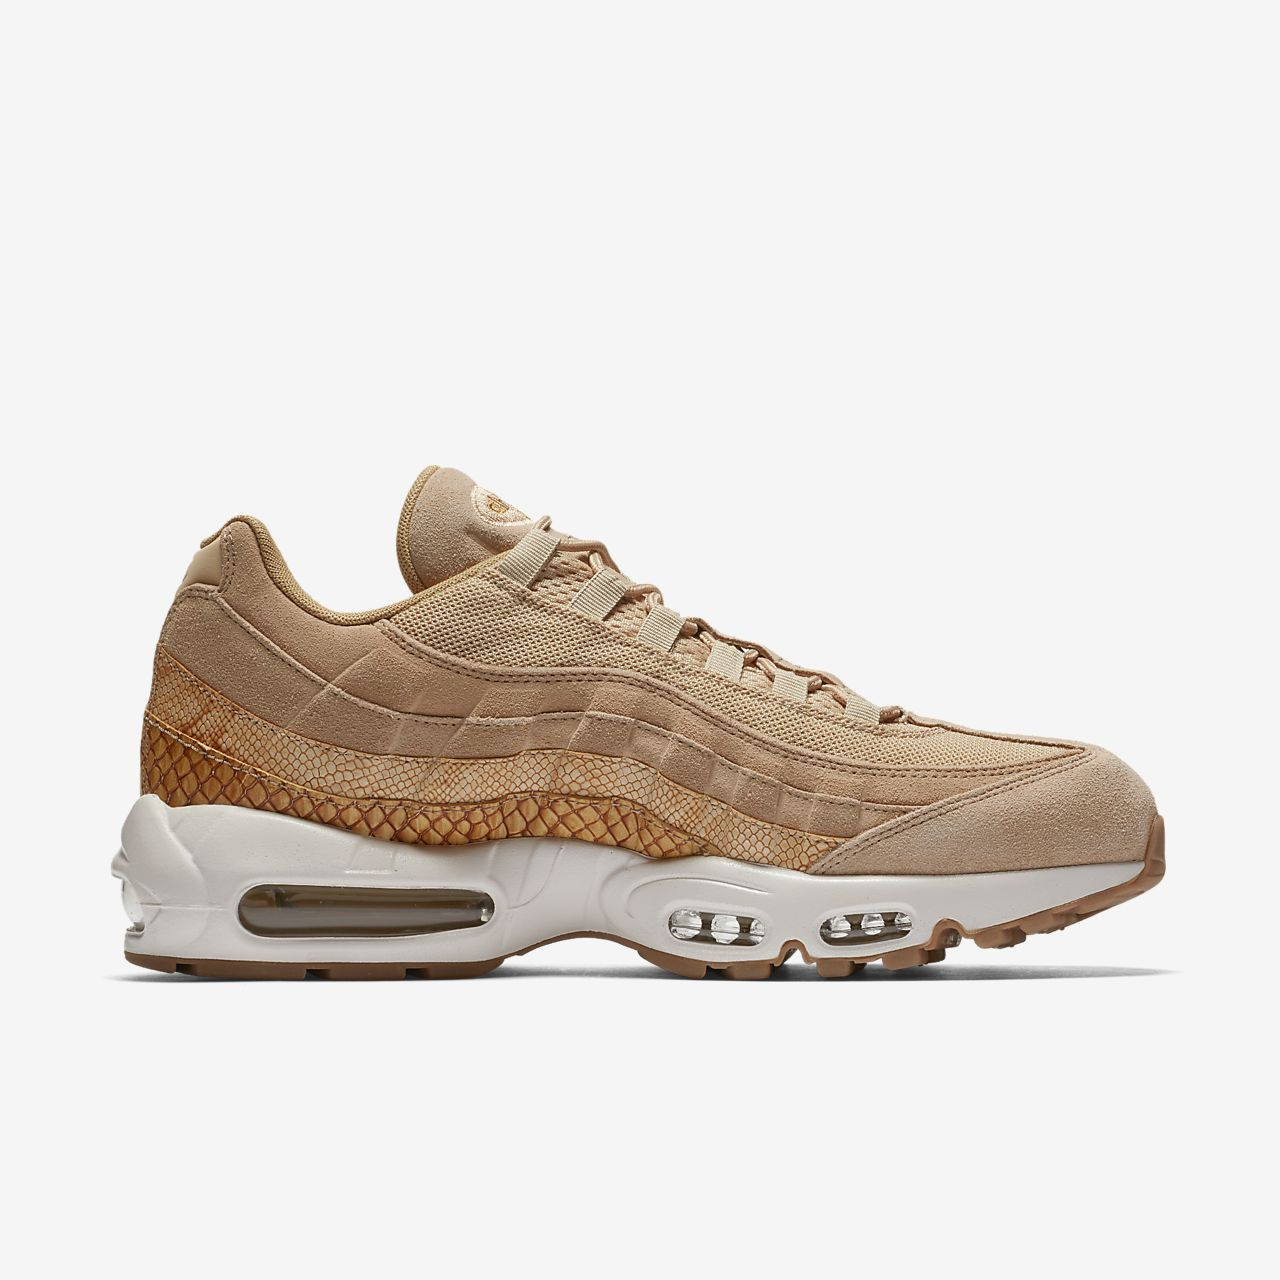 new style c332b 63f79 Chaussures Nike Air Max 95 roses homme jxlUcNWQv